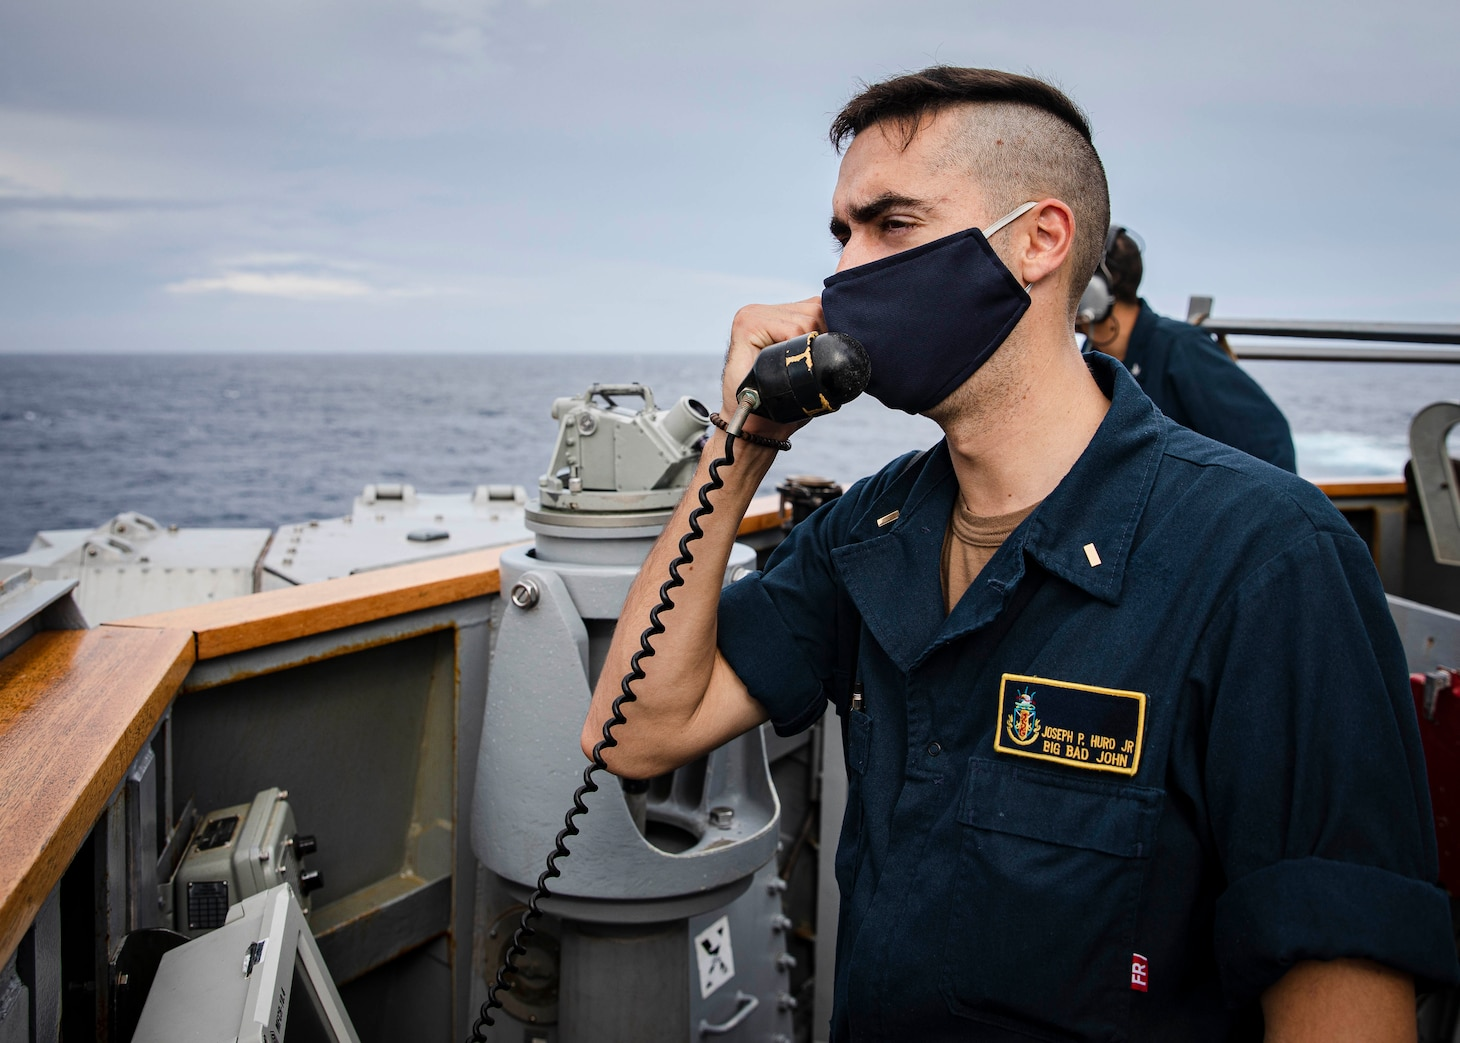 SOUTH CHINA SEA (Dec. 22, 2020) Conning Officer Ensign Joseph Hurd, from Foley, Alabama, gives course and speed orders to the helm while standing watch on the bridge wing as the guided-missile destroyer USS John S. McCain (DDG 56) conducts routine underway operations. McCain is forward-deployed to the U.S. 7th Fleet area of operations in support of security and stability in the Indo-Pacific region. (U.S. Navy photo by Mass Communication Specialist 2nd Class Markus Castaneda)